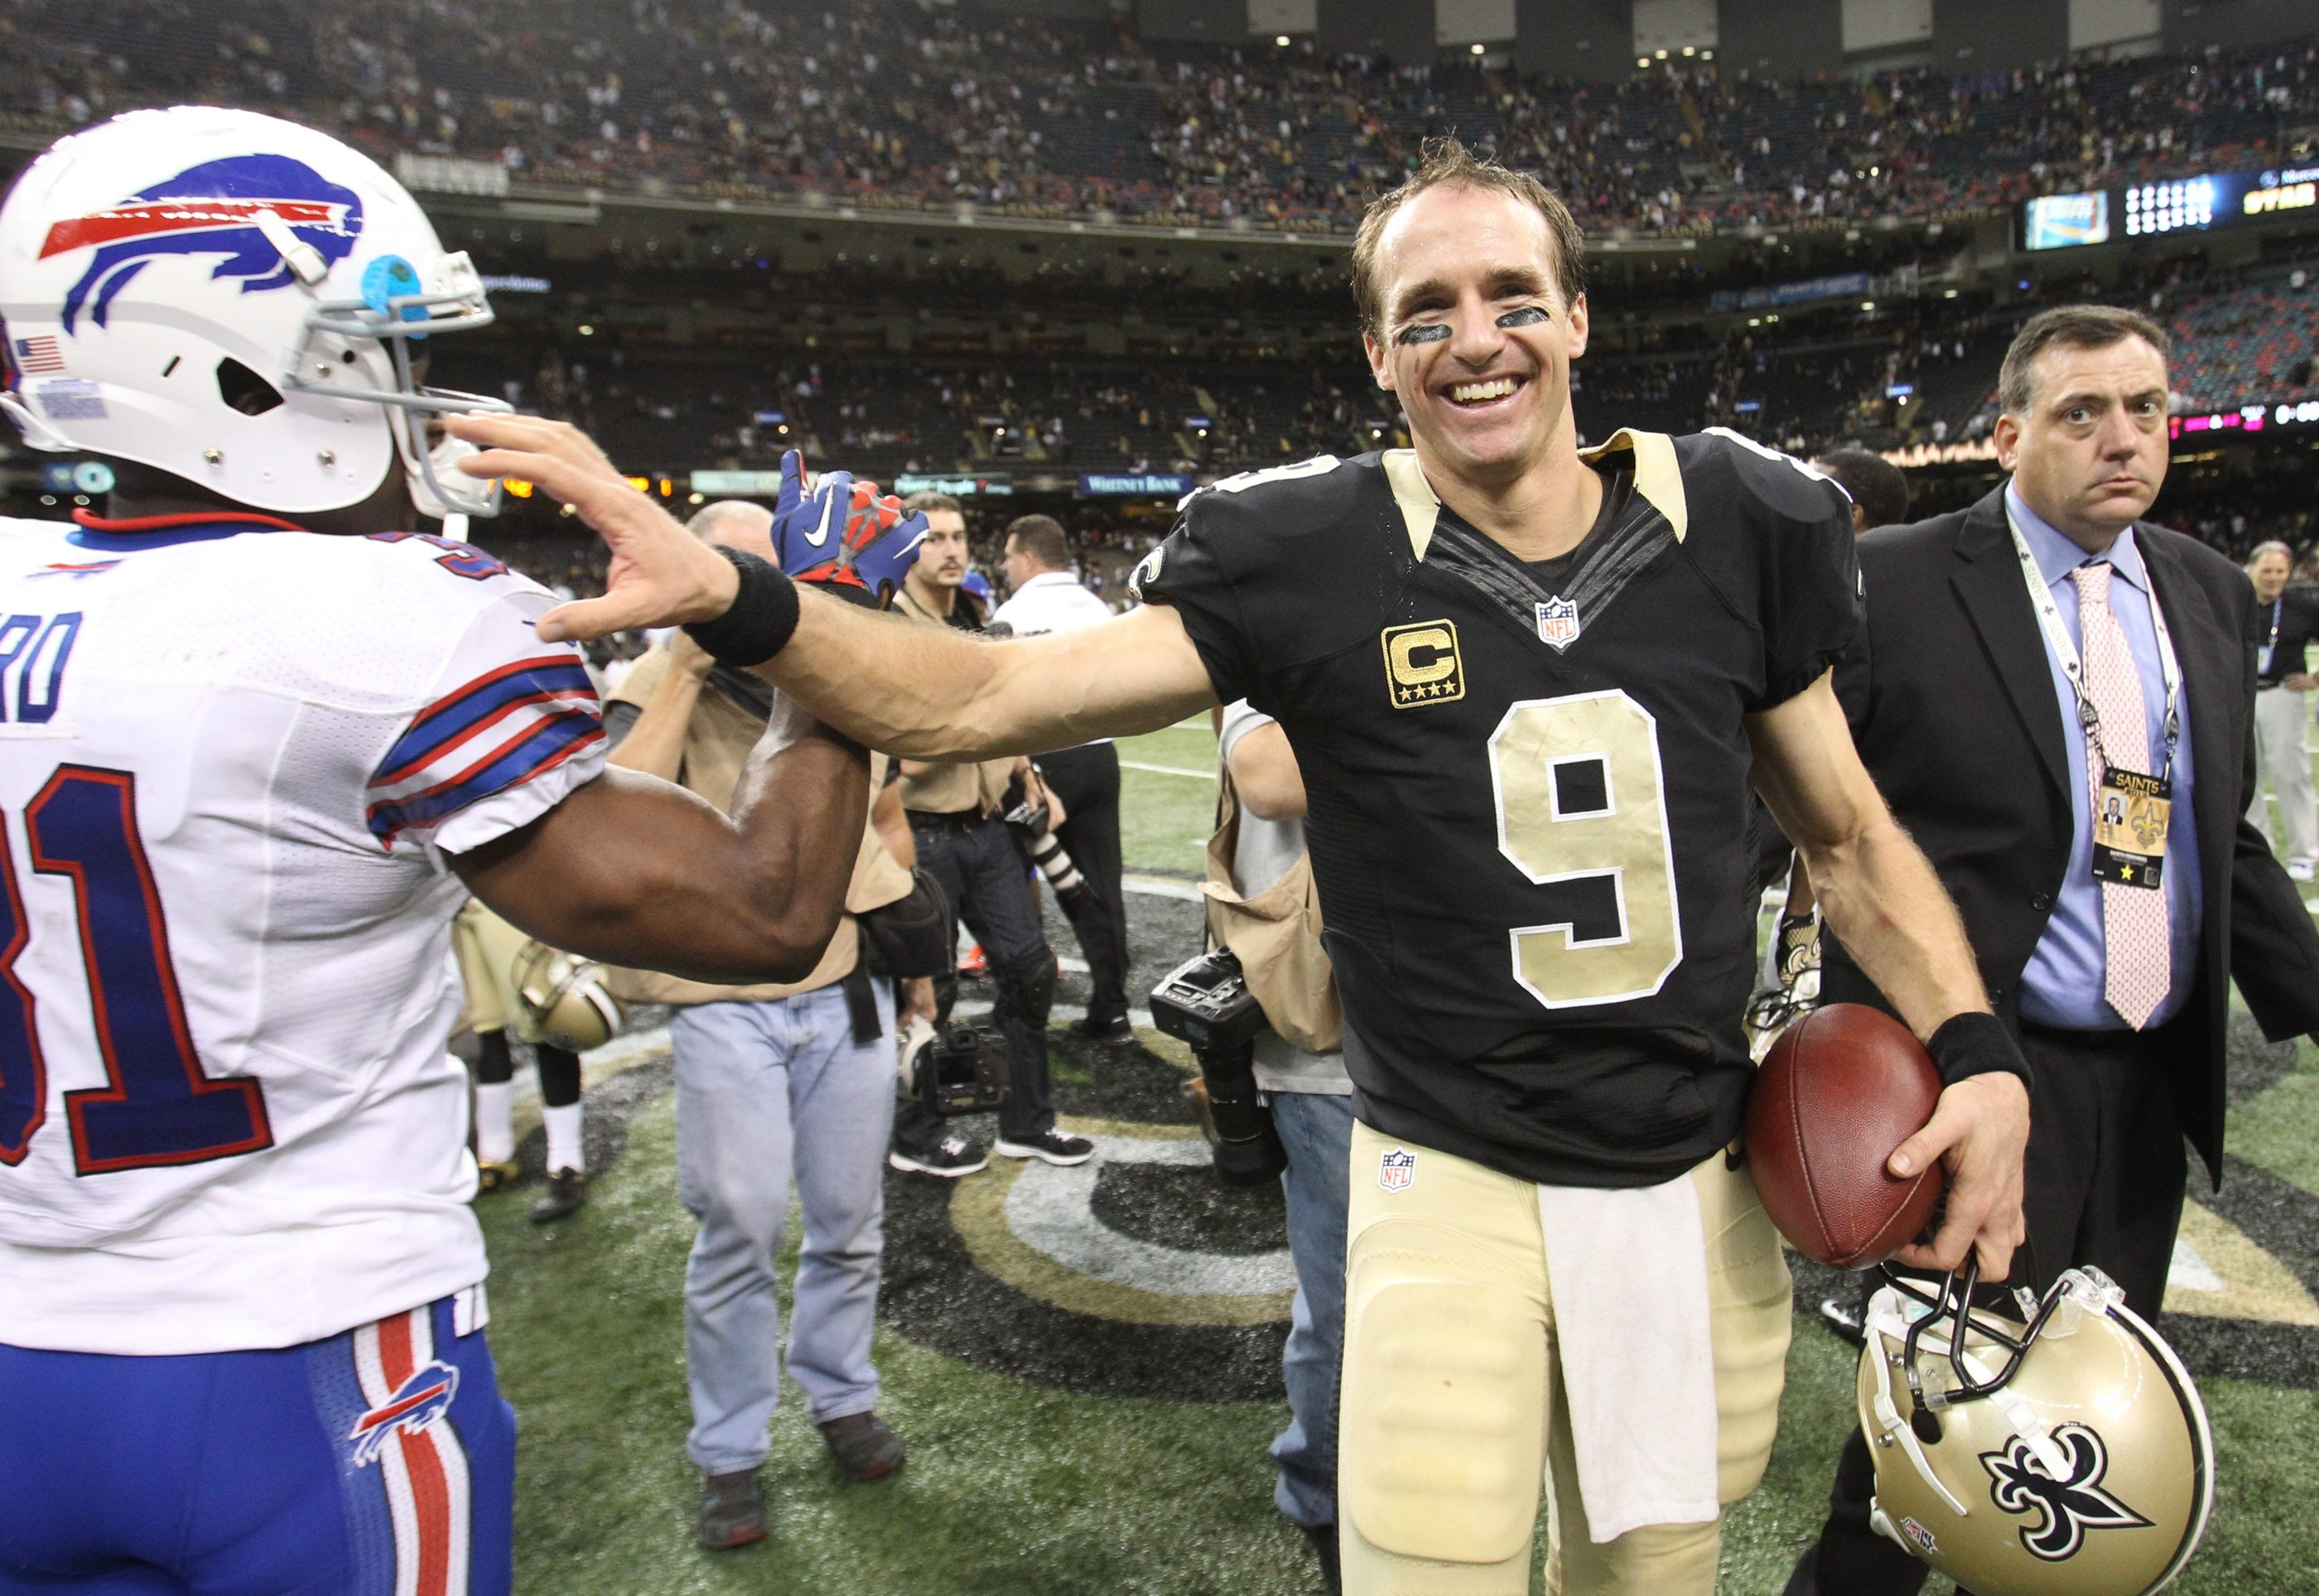 Saints quarterback Drew Brees shares a joke with Bills free safety Jairus Byrd after a five-touchdown game.